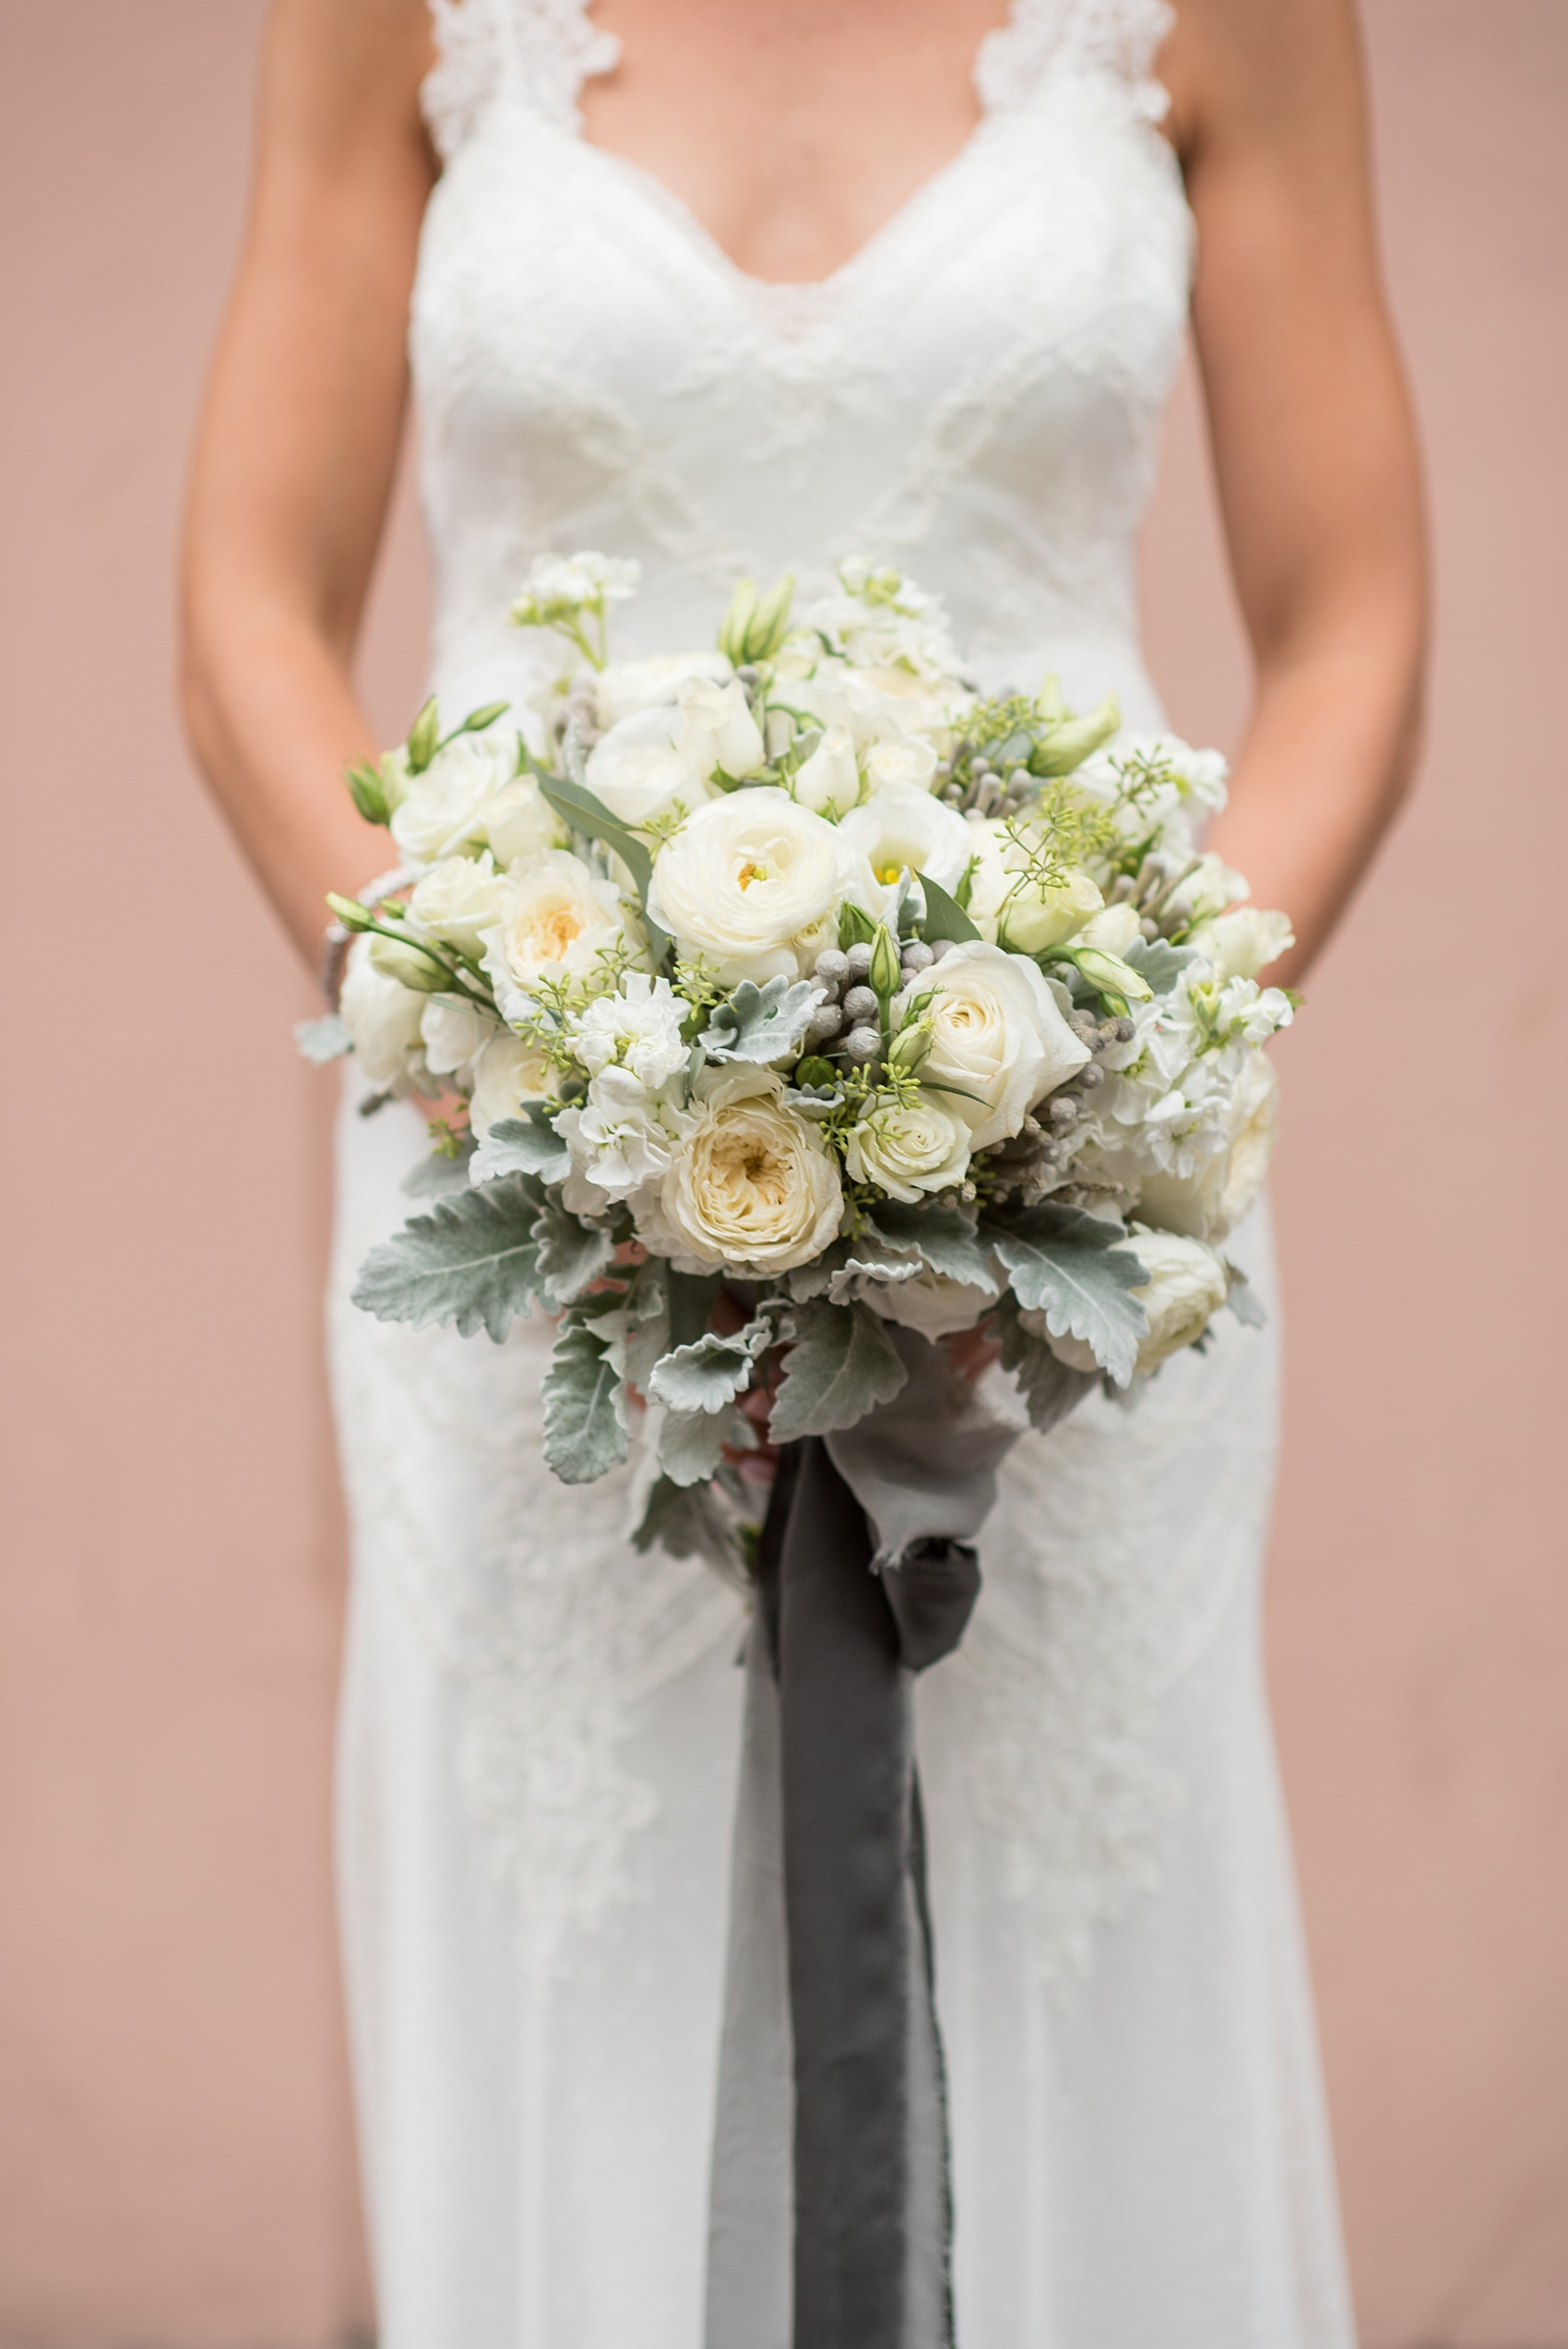 Mikkel Paige Photography photos of a luxury wedding in NYC. Portrait picture of the bride in her form fitting David Fielden wedding gown from Kleinfeld's, holding her white bouquet with ranunculus and brunia.